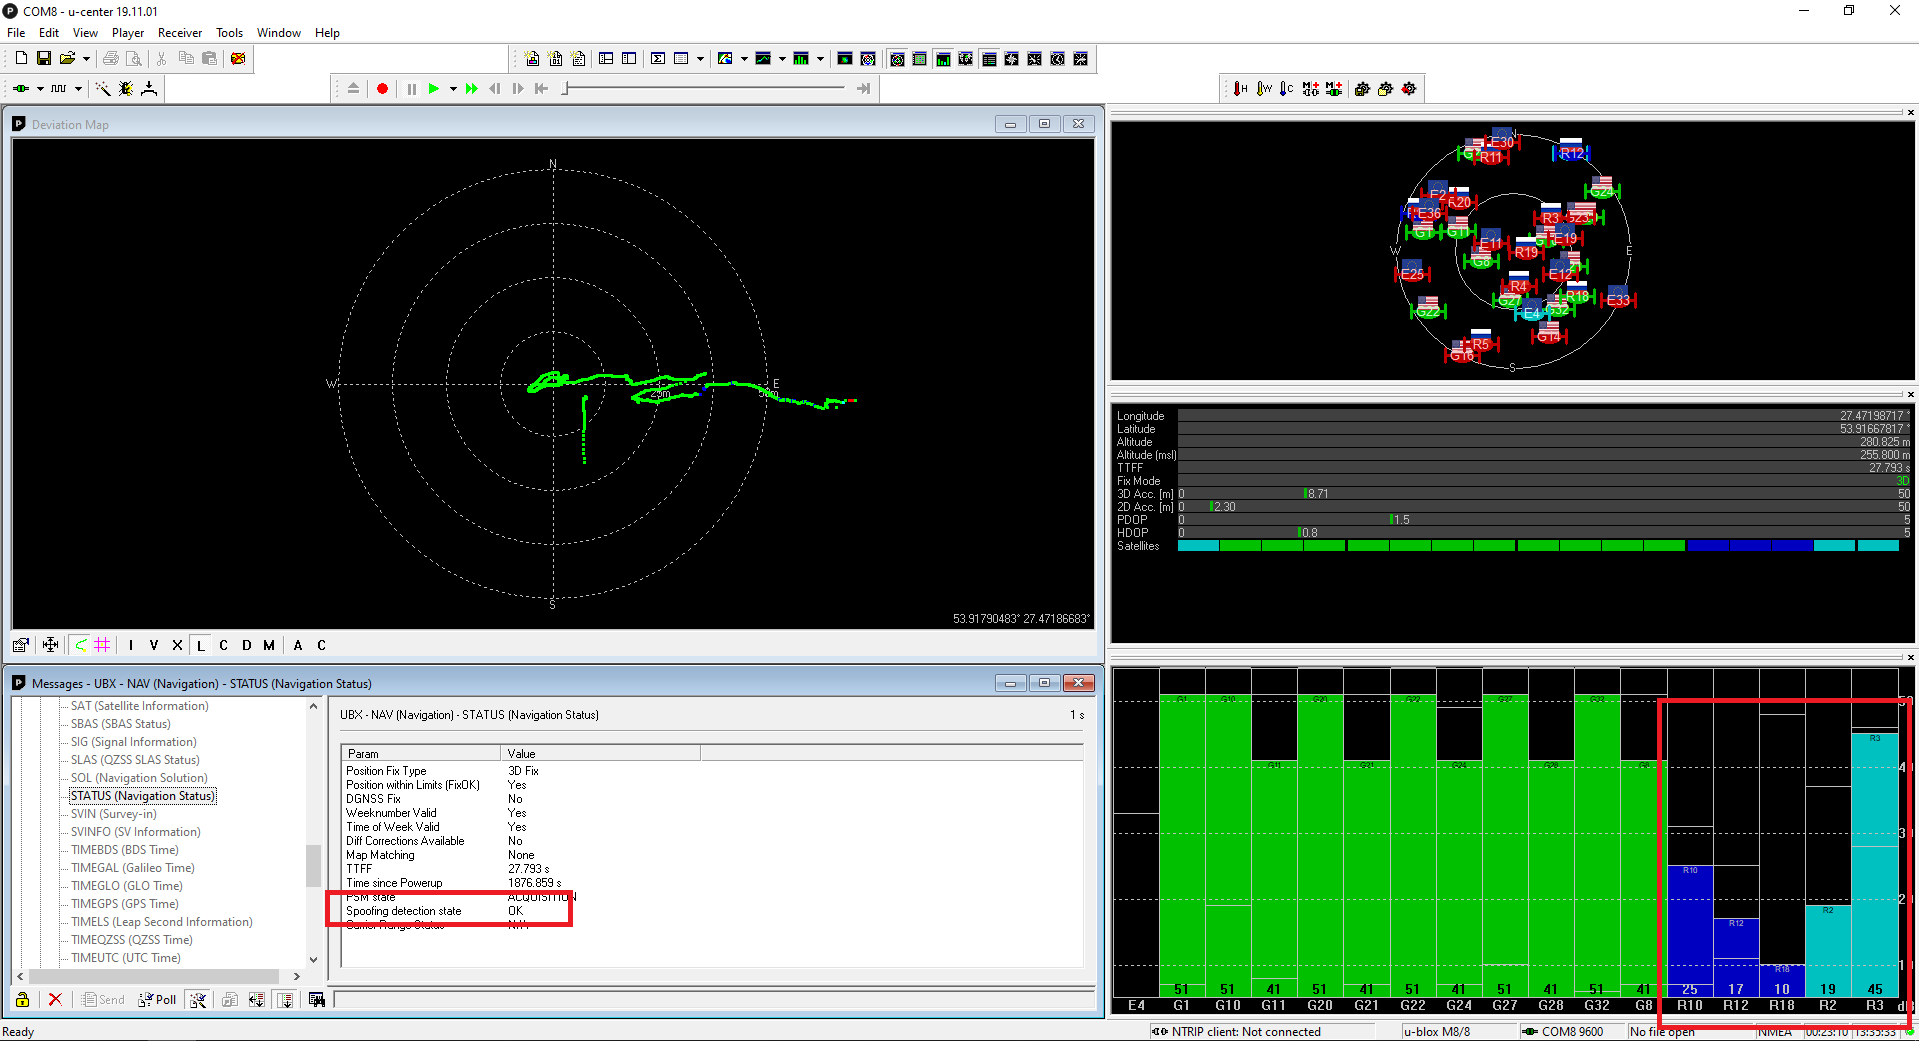 GNSS Satelates After Jammer off